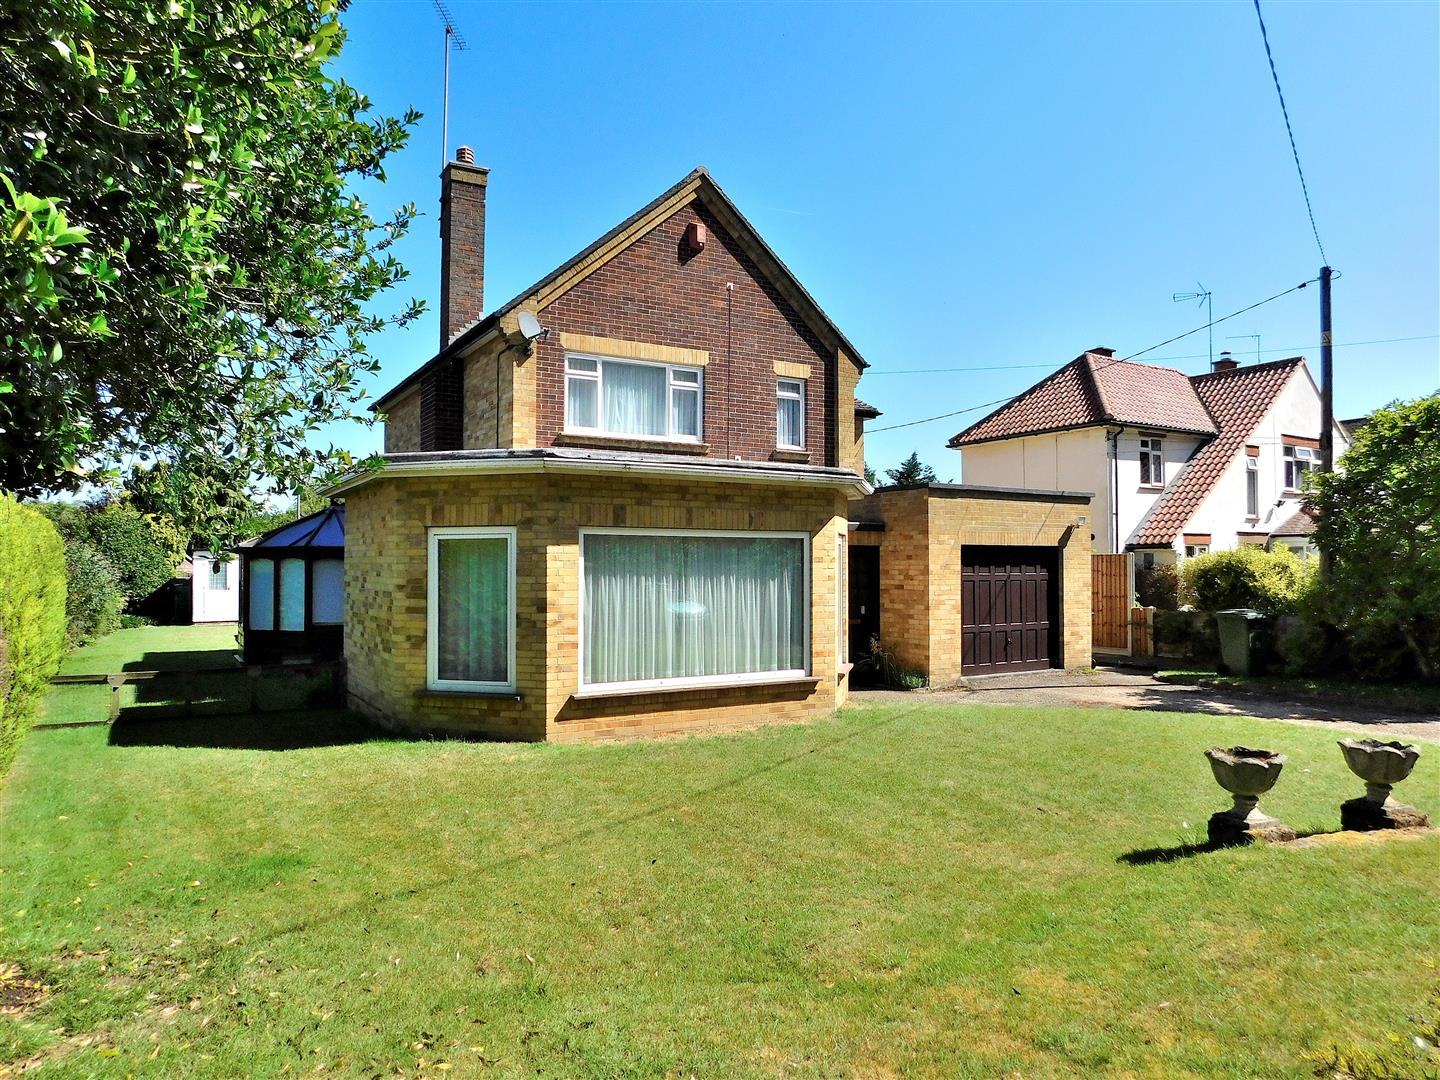 3 bed detached house for sale in King's Lynn, PE30 3NY  - Property Image 1